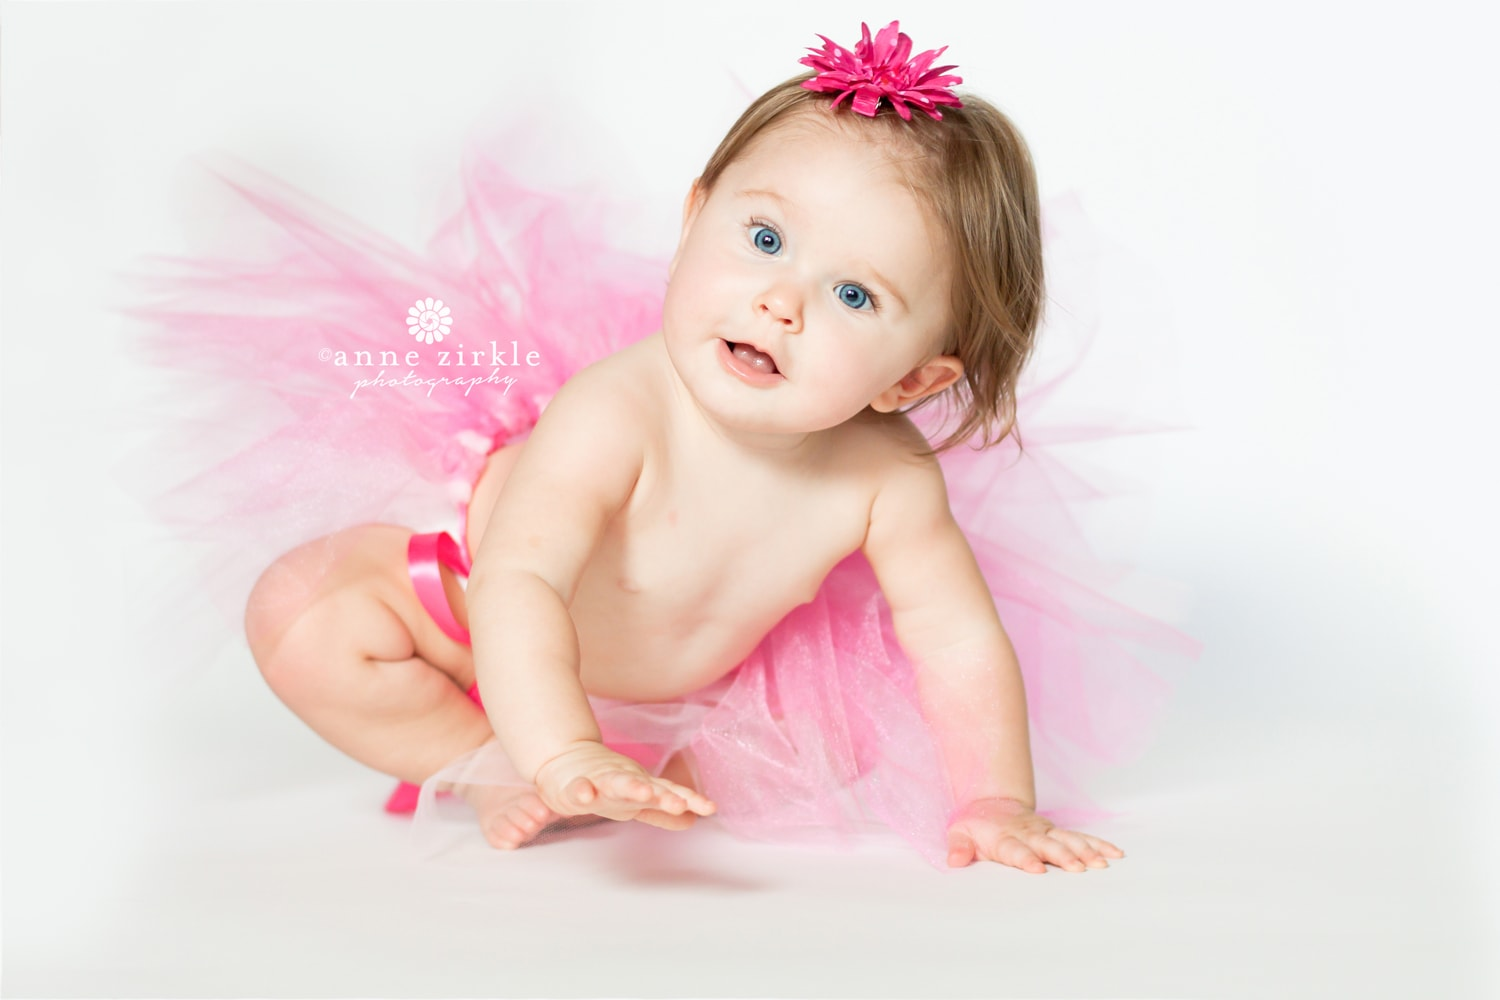 baby-girl-crawling-in-pink-tutu